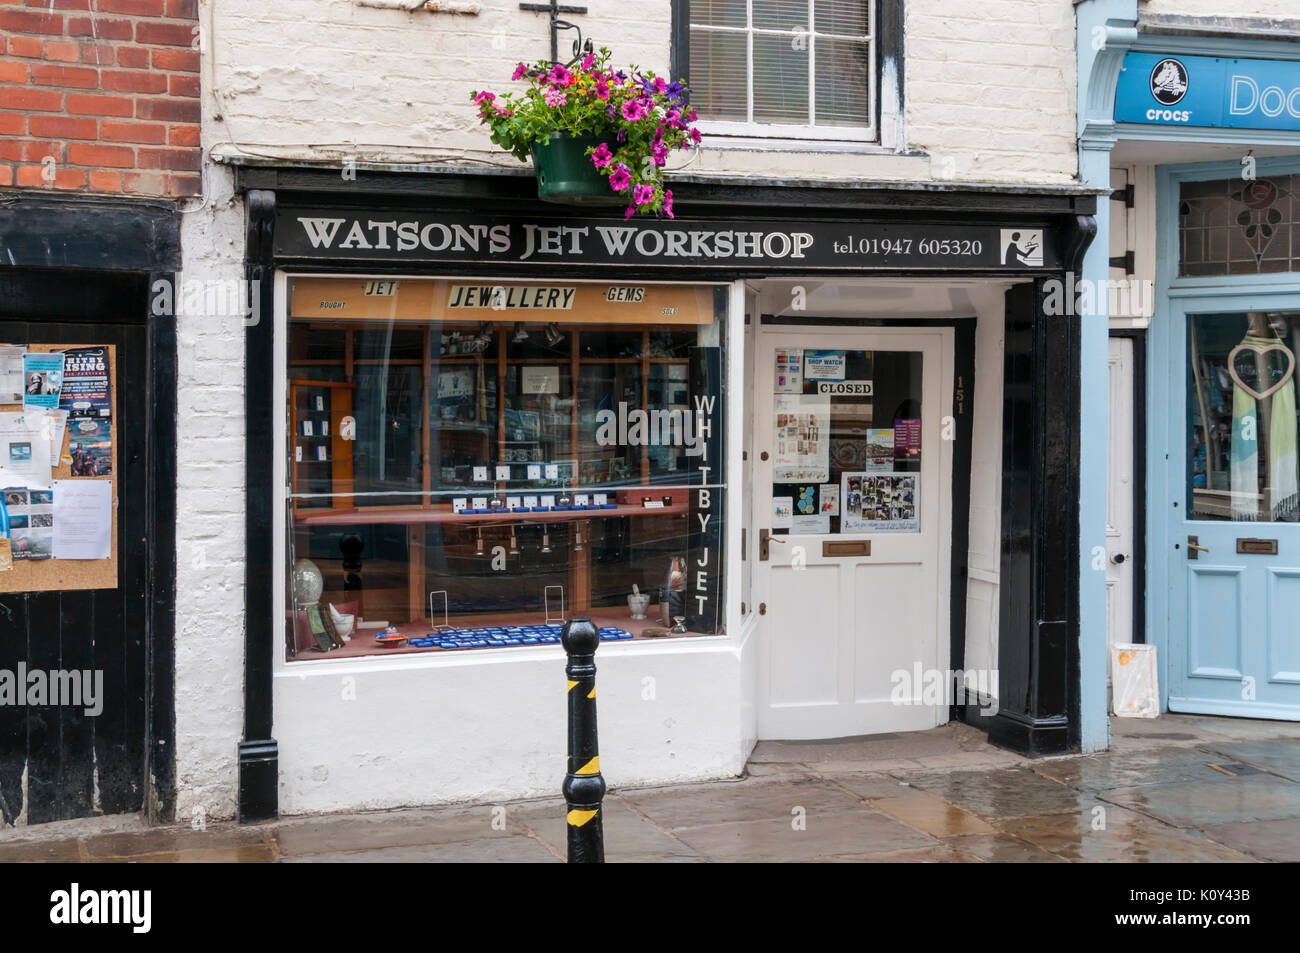 Watsons Jet Workshop, a traditional maker of jet jewellery in Whitby, North Yorkshire. - Stock Image